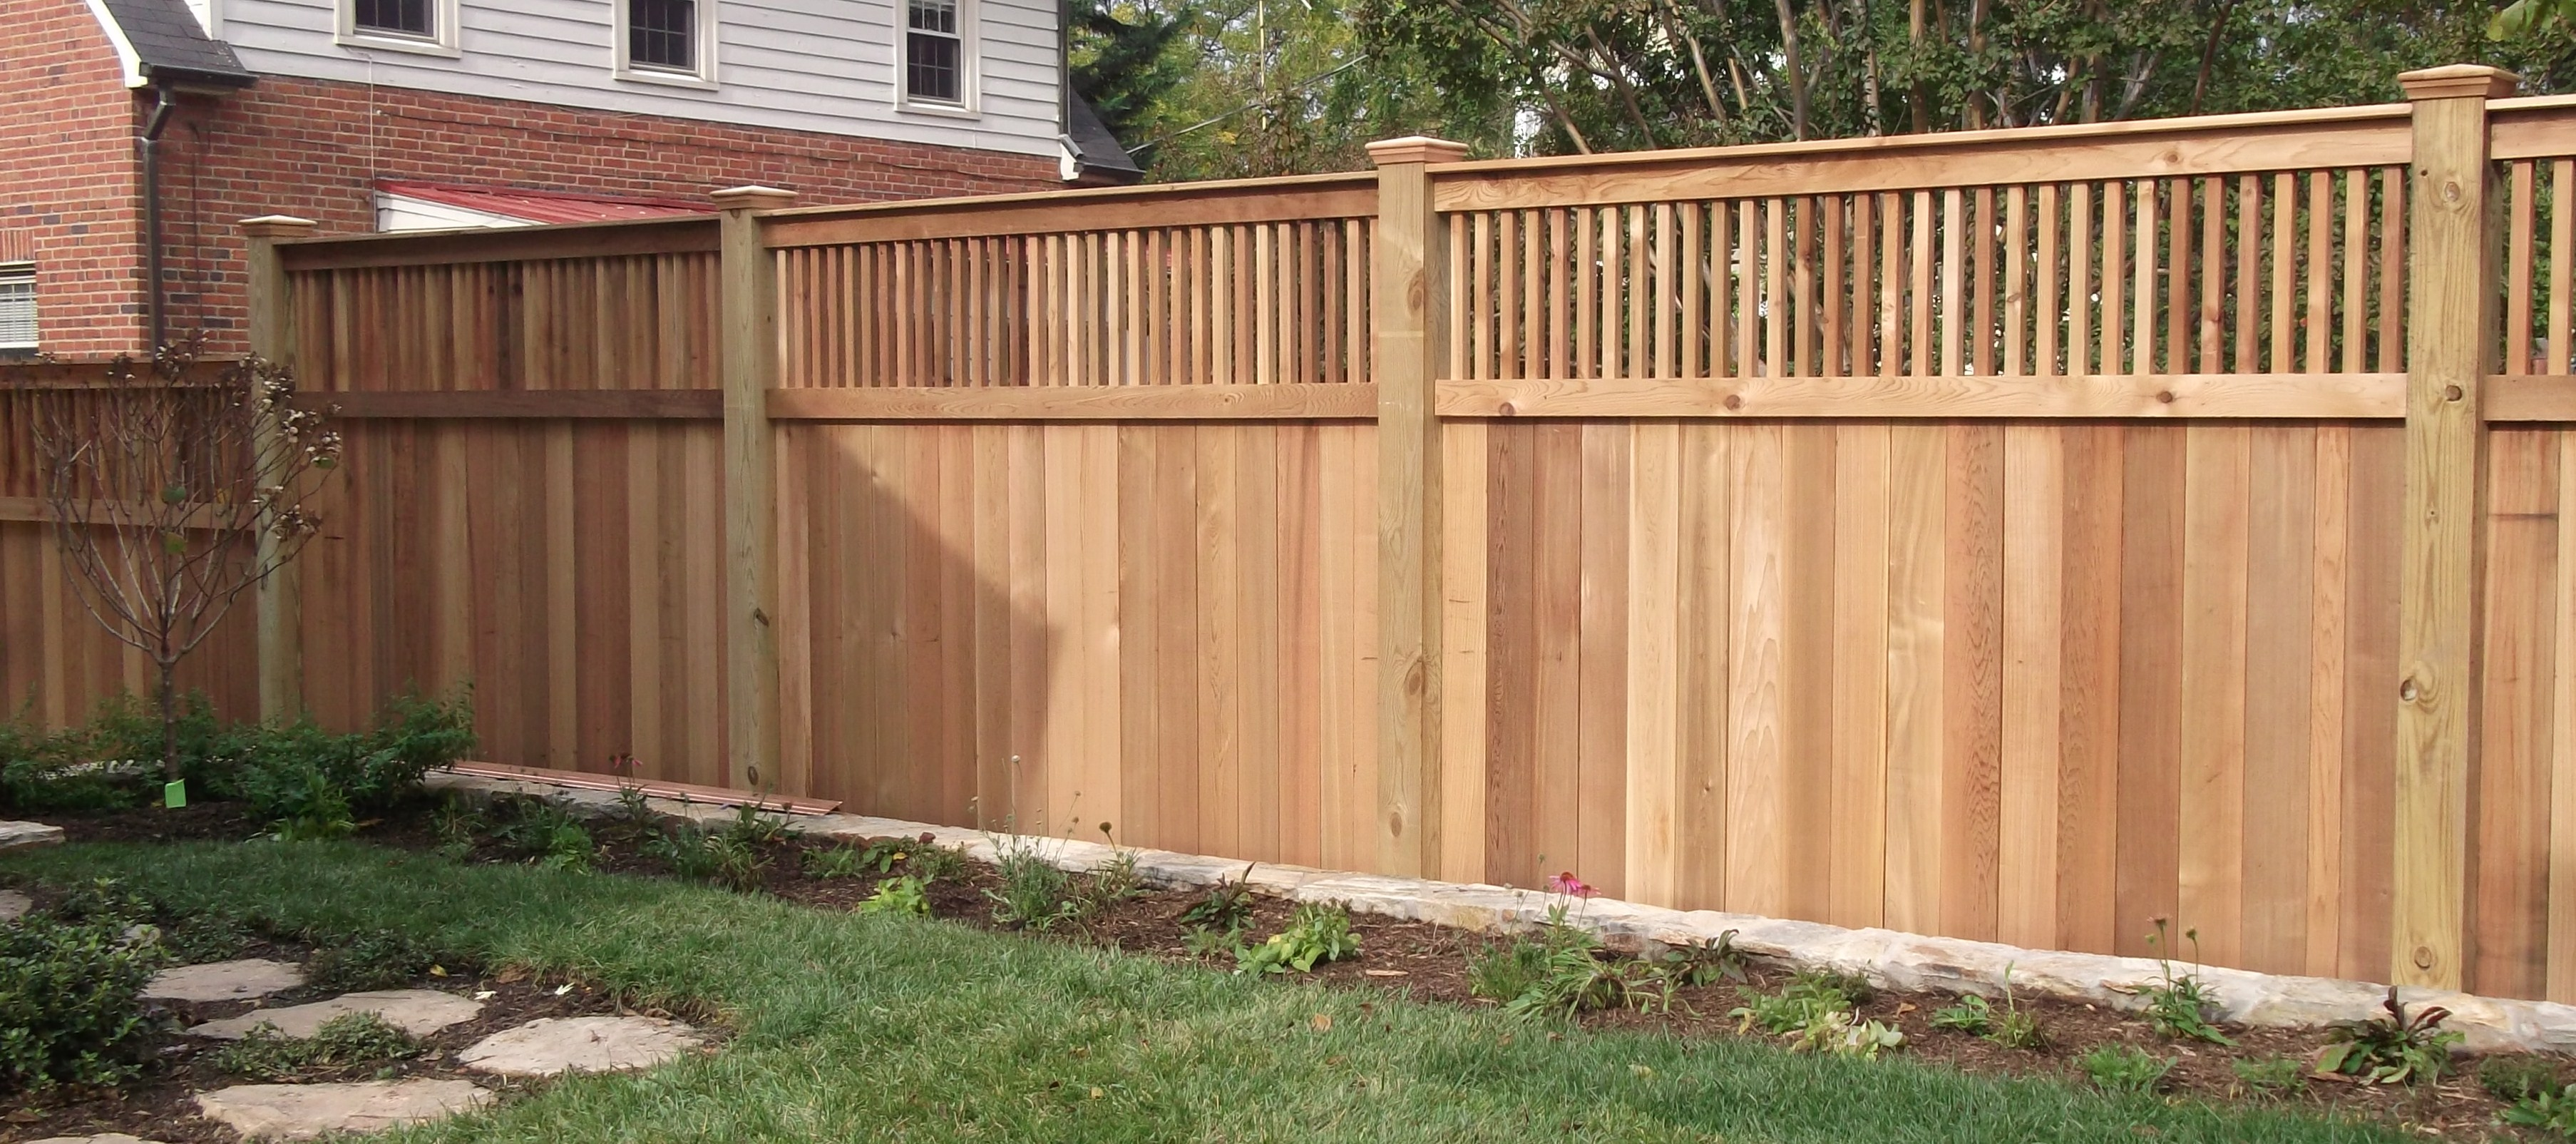 Wood Fence Styles Designs Backyard fence ideas large and beautiful photos photo to select backyard fence ideas large and beautiful photos photo to select backyard fence ideas design your home workwithnaturefo